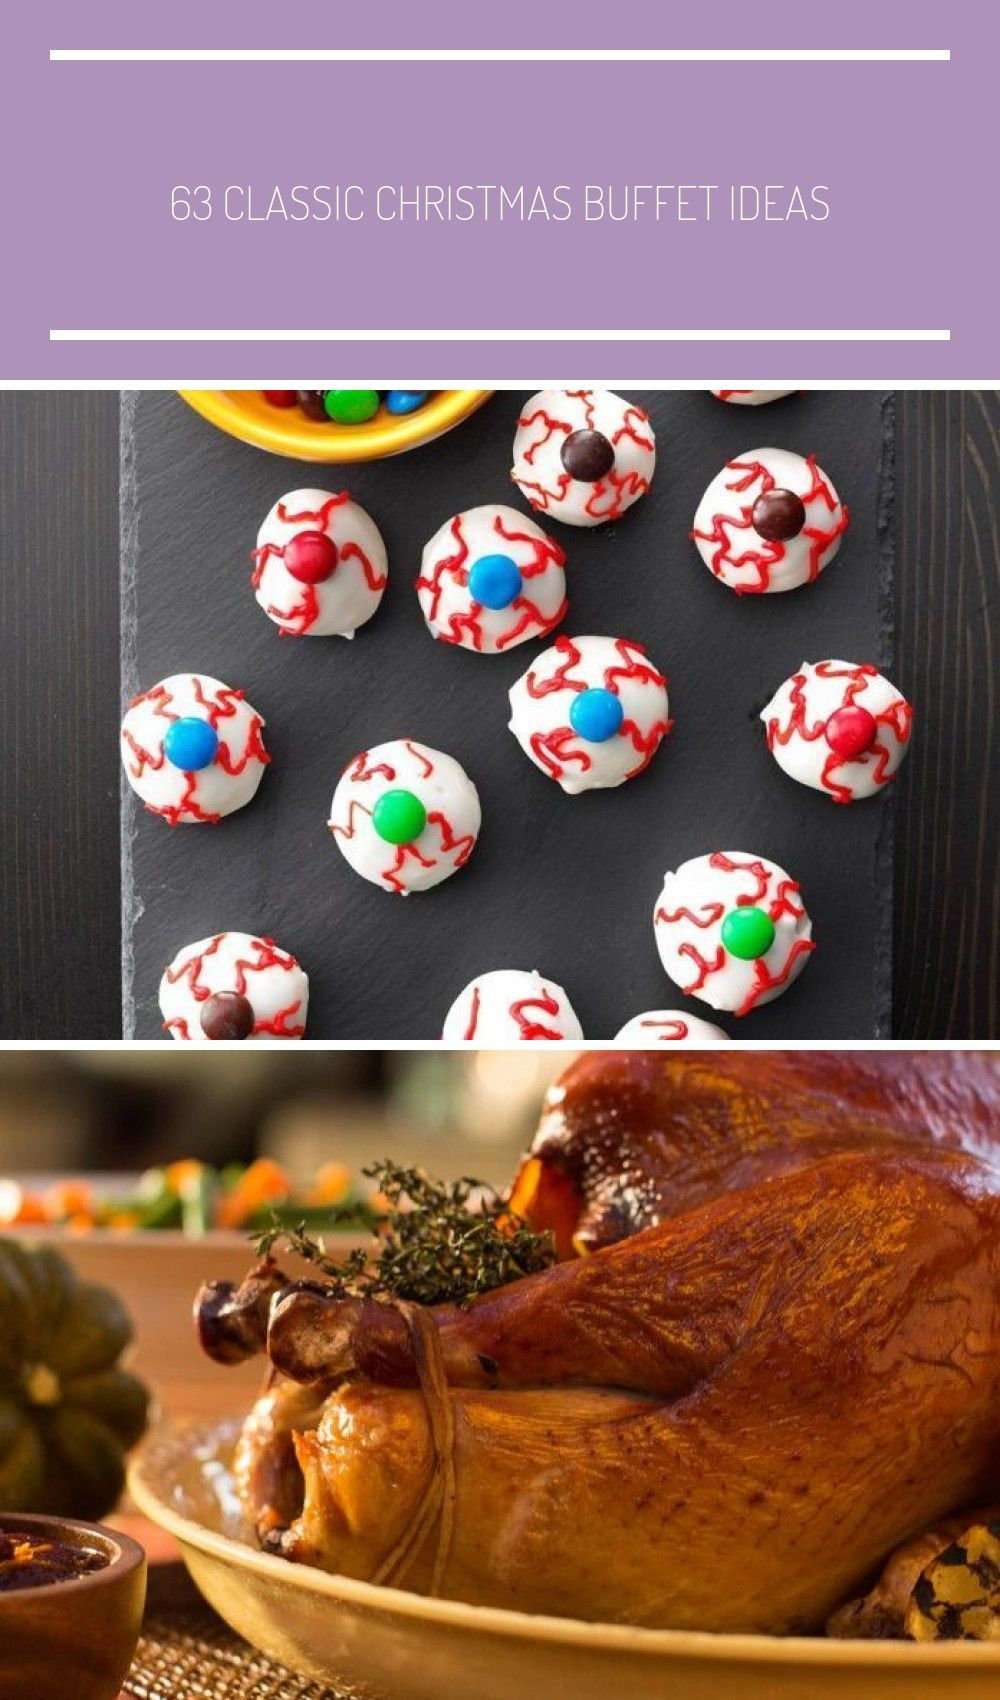 72 Halloween Potluck Recipes to Feed a Crowd #halloweenpotluckideas 60 Howling Good Halloween Potluck Ideas | Taste of Home #halloweenpotluckideas 72 Halloween Potluck Recipes to Feed a Crowd #halloweenpotluckideas 60 Howling Good Halloween Potluck Ideas | Taste of Home #holiday desserts for a crowd potluck recipes #halloweenpotluckideas 72 Halloween Potluck Recipes to Feed a Crowd #halloweenpotluckideas 60 Howling Good Halloween Potluck Ideas | Taste of Home #halloweenpotluckideas 72 Halloween #halloweenpotluckideas